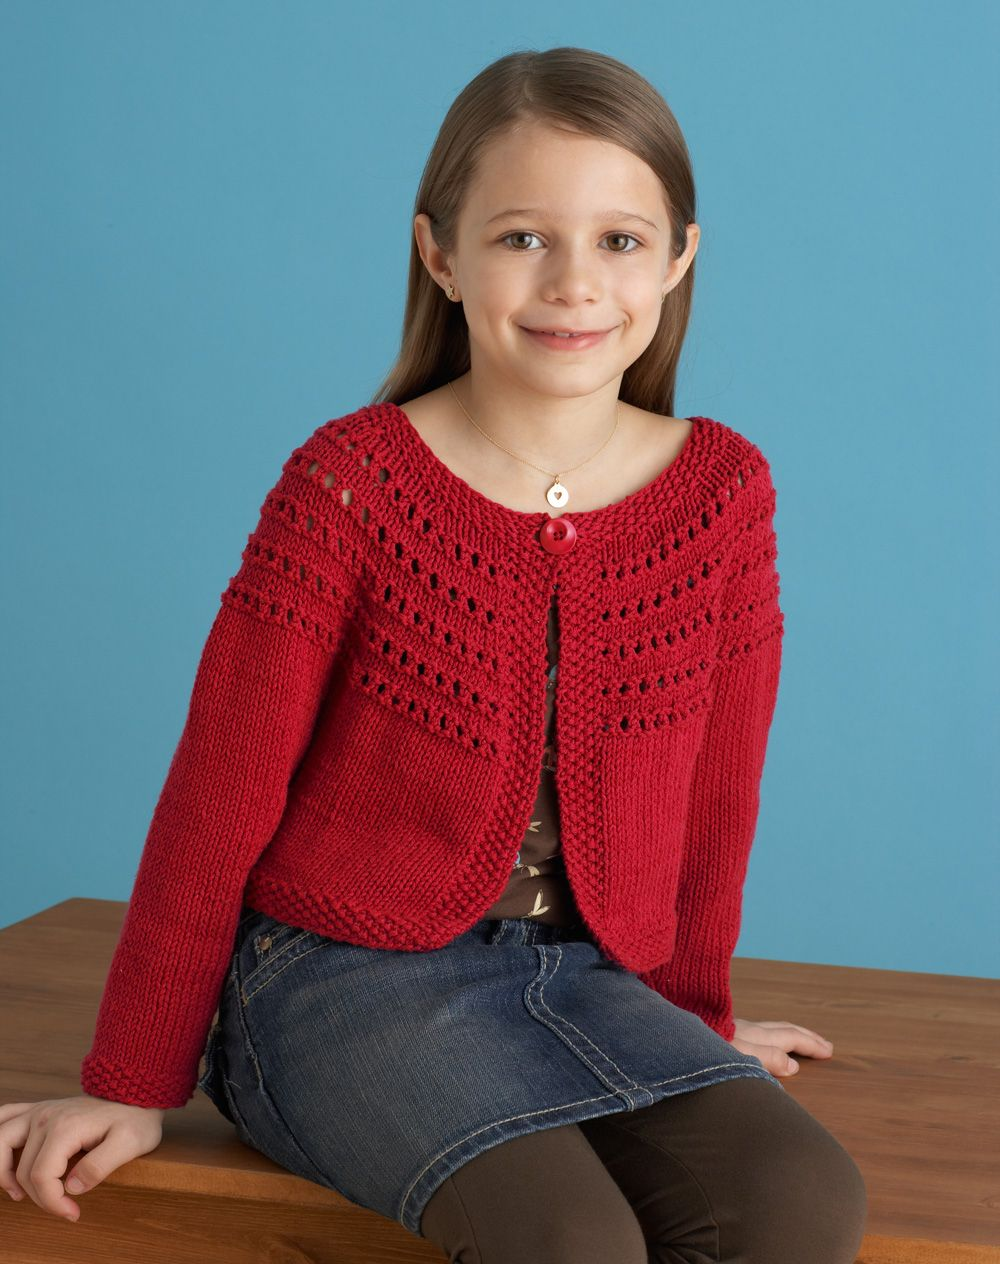 15 Sweaters, Hoodies, and Dresses for Kids, Tweens, and ...